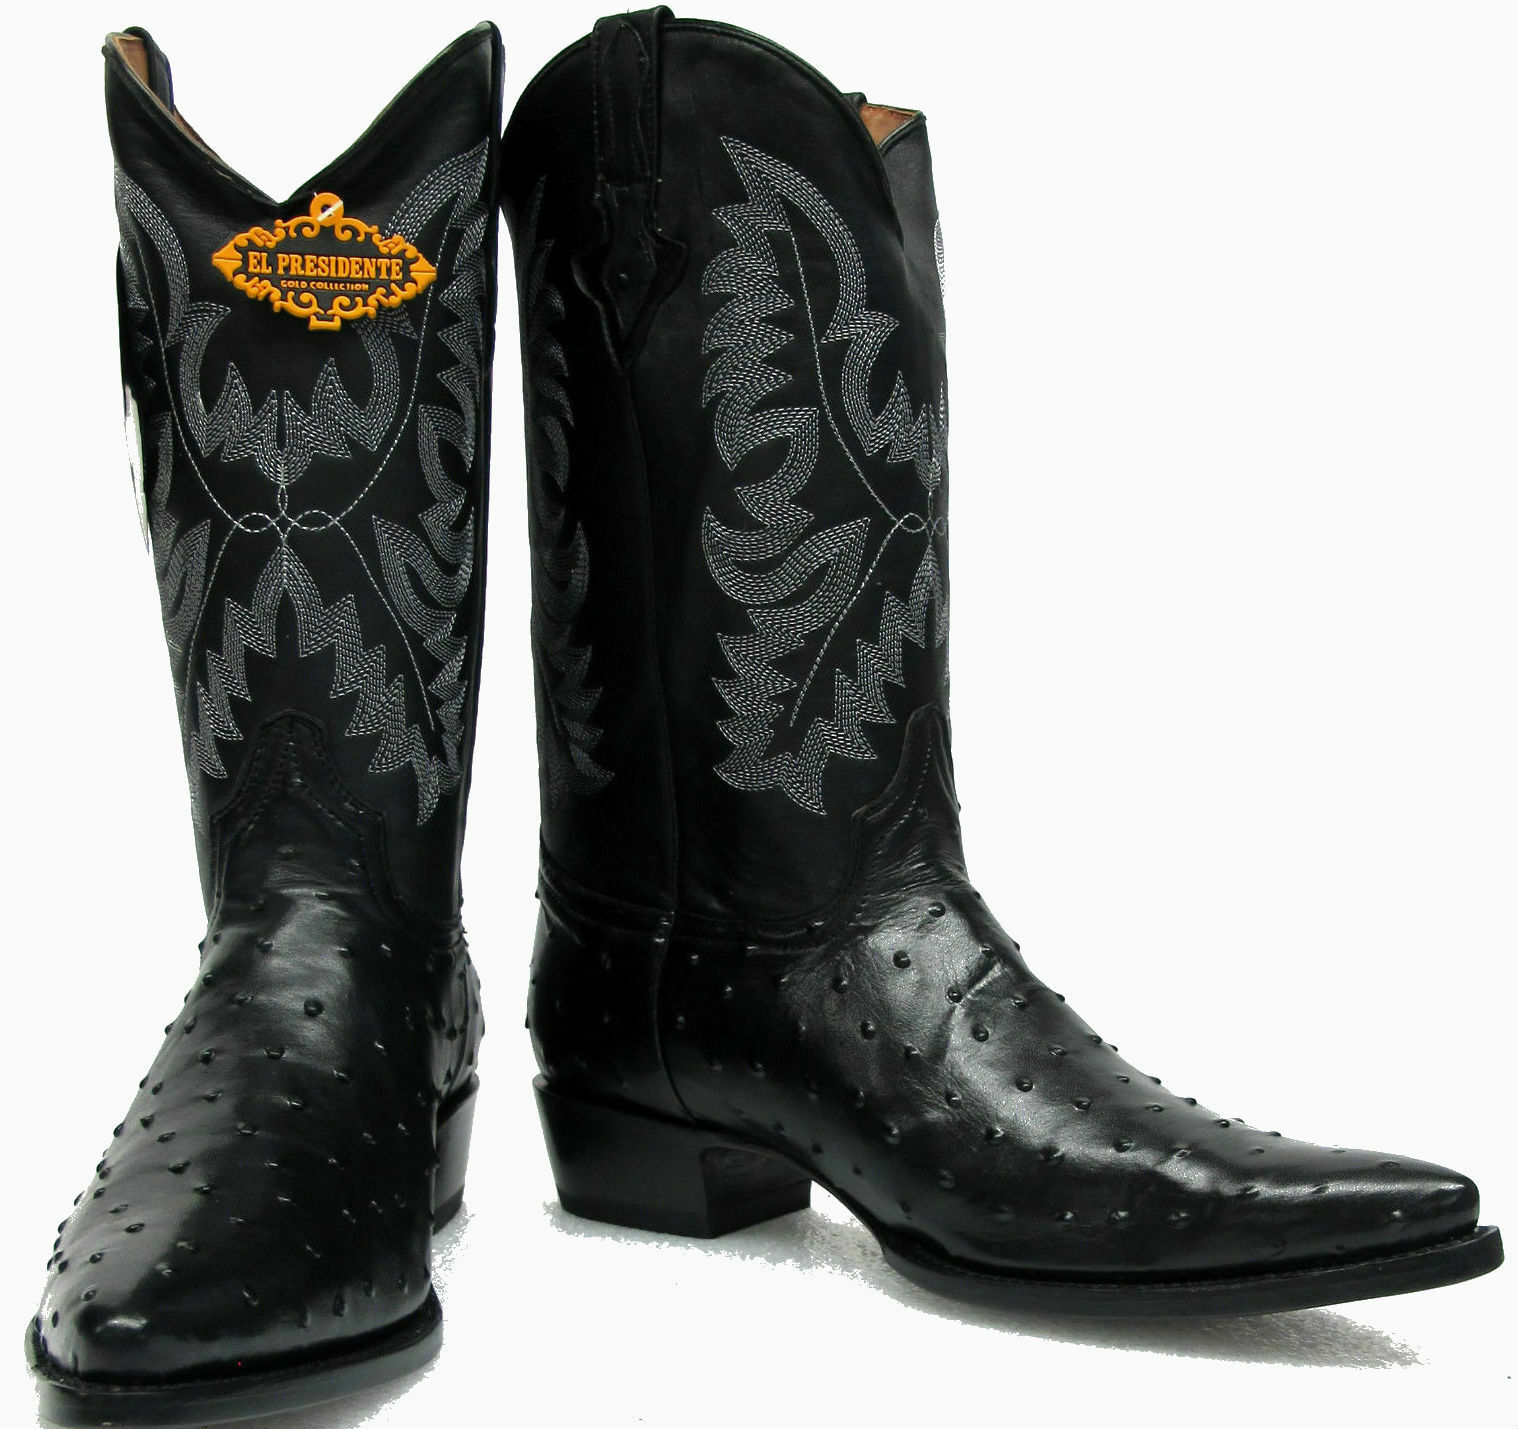 Men's New Ostrich Quill Design Leather Cowboy Western Rodeo Boots J Toe Black